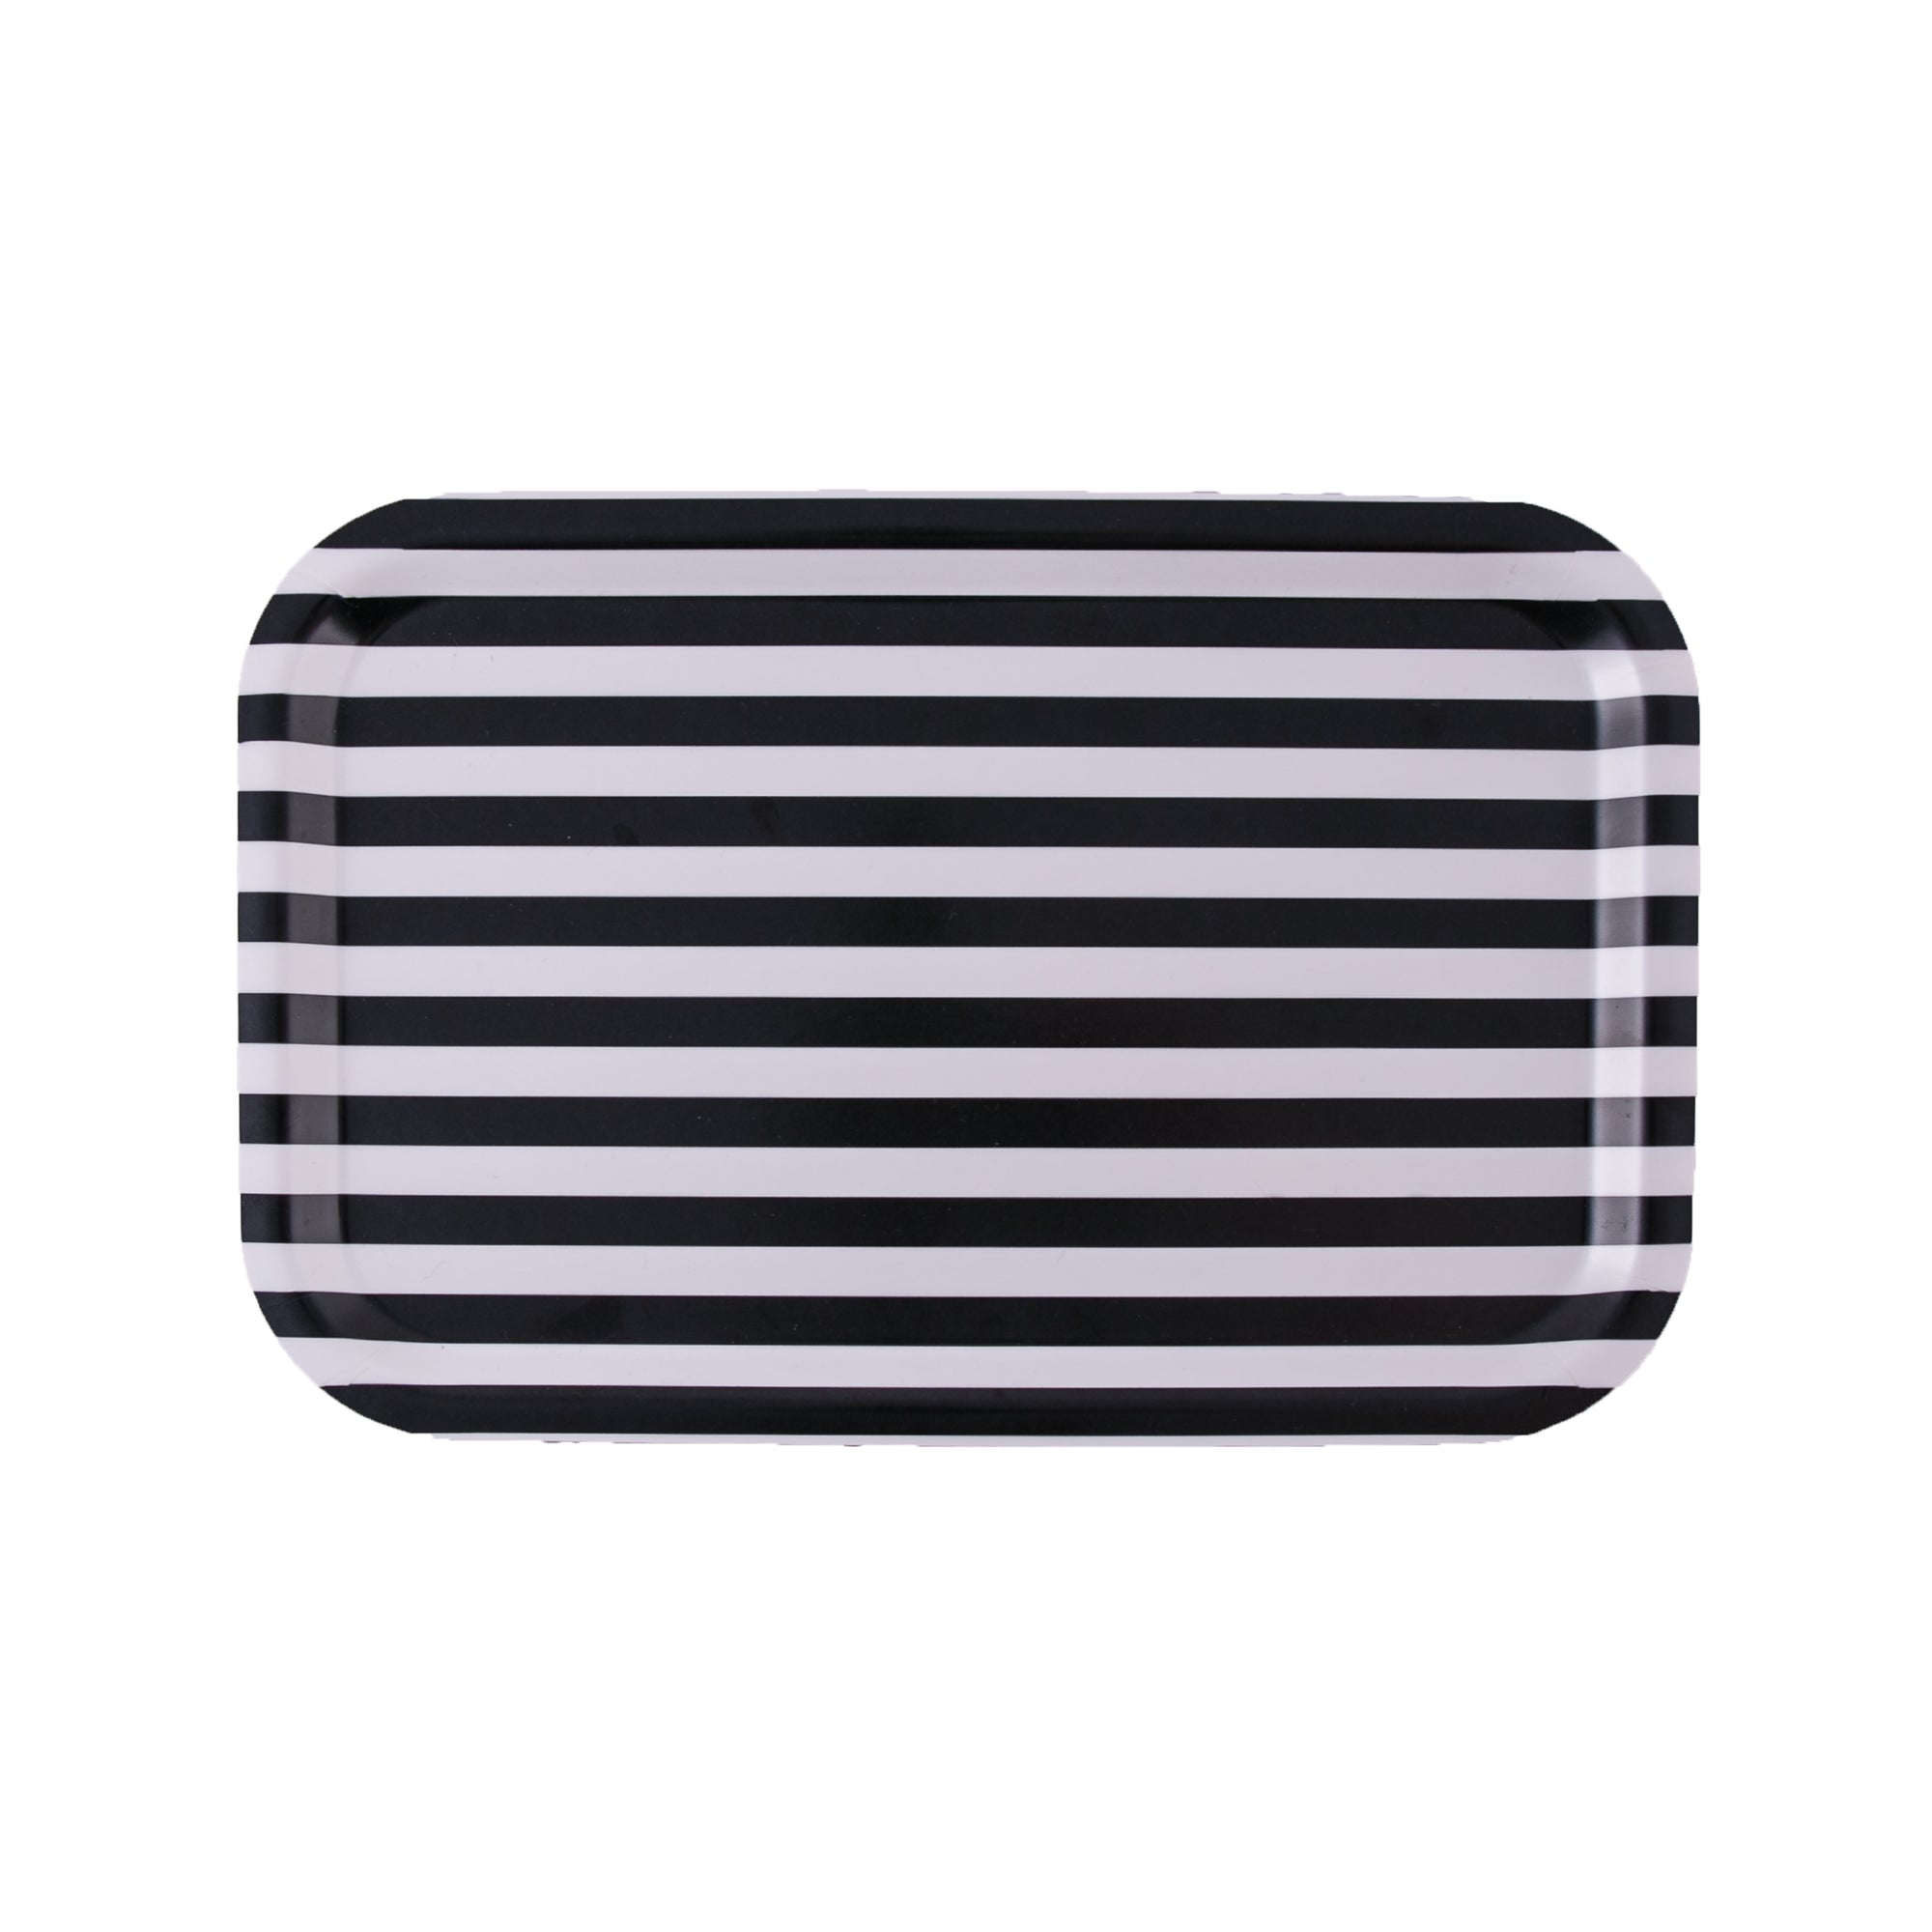 Stripes Tray - MAiK sustainably sourced, ethically produced.